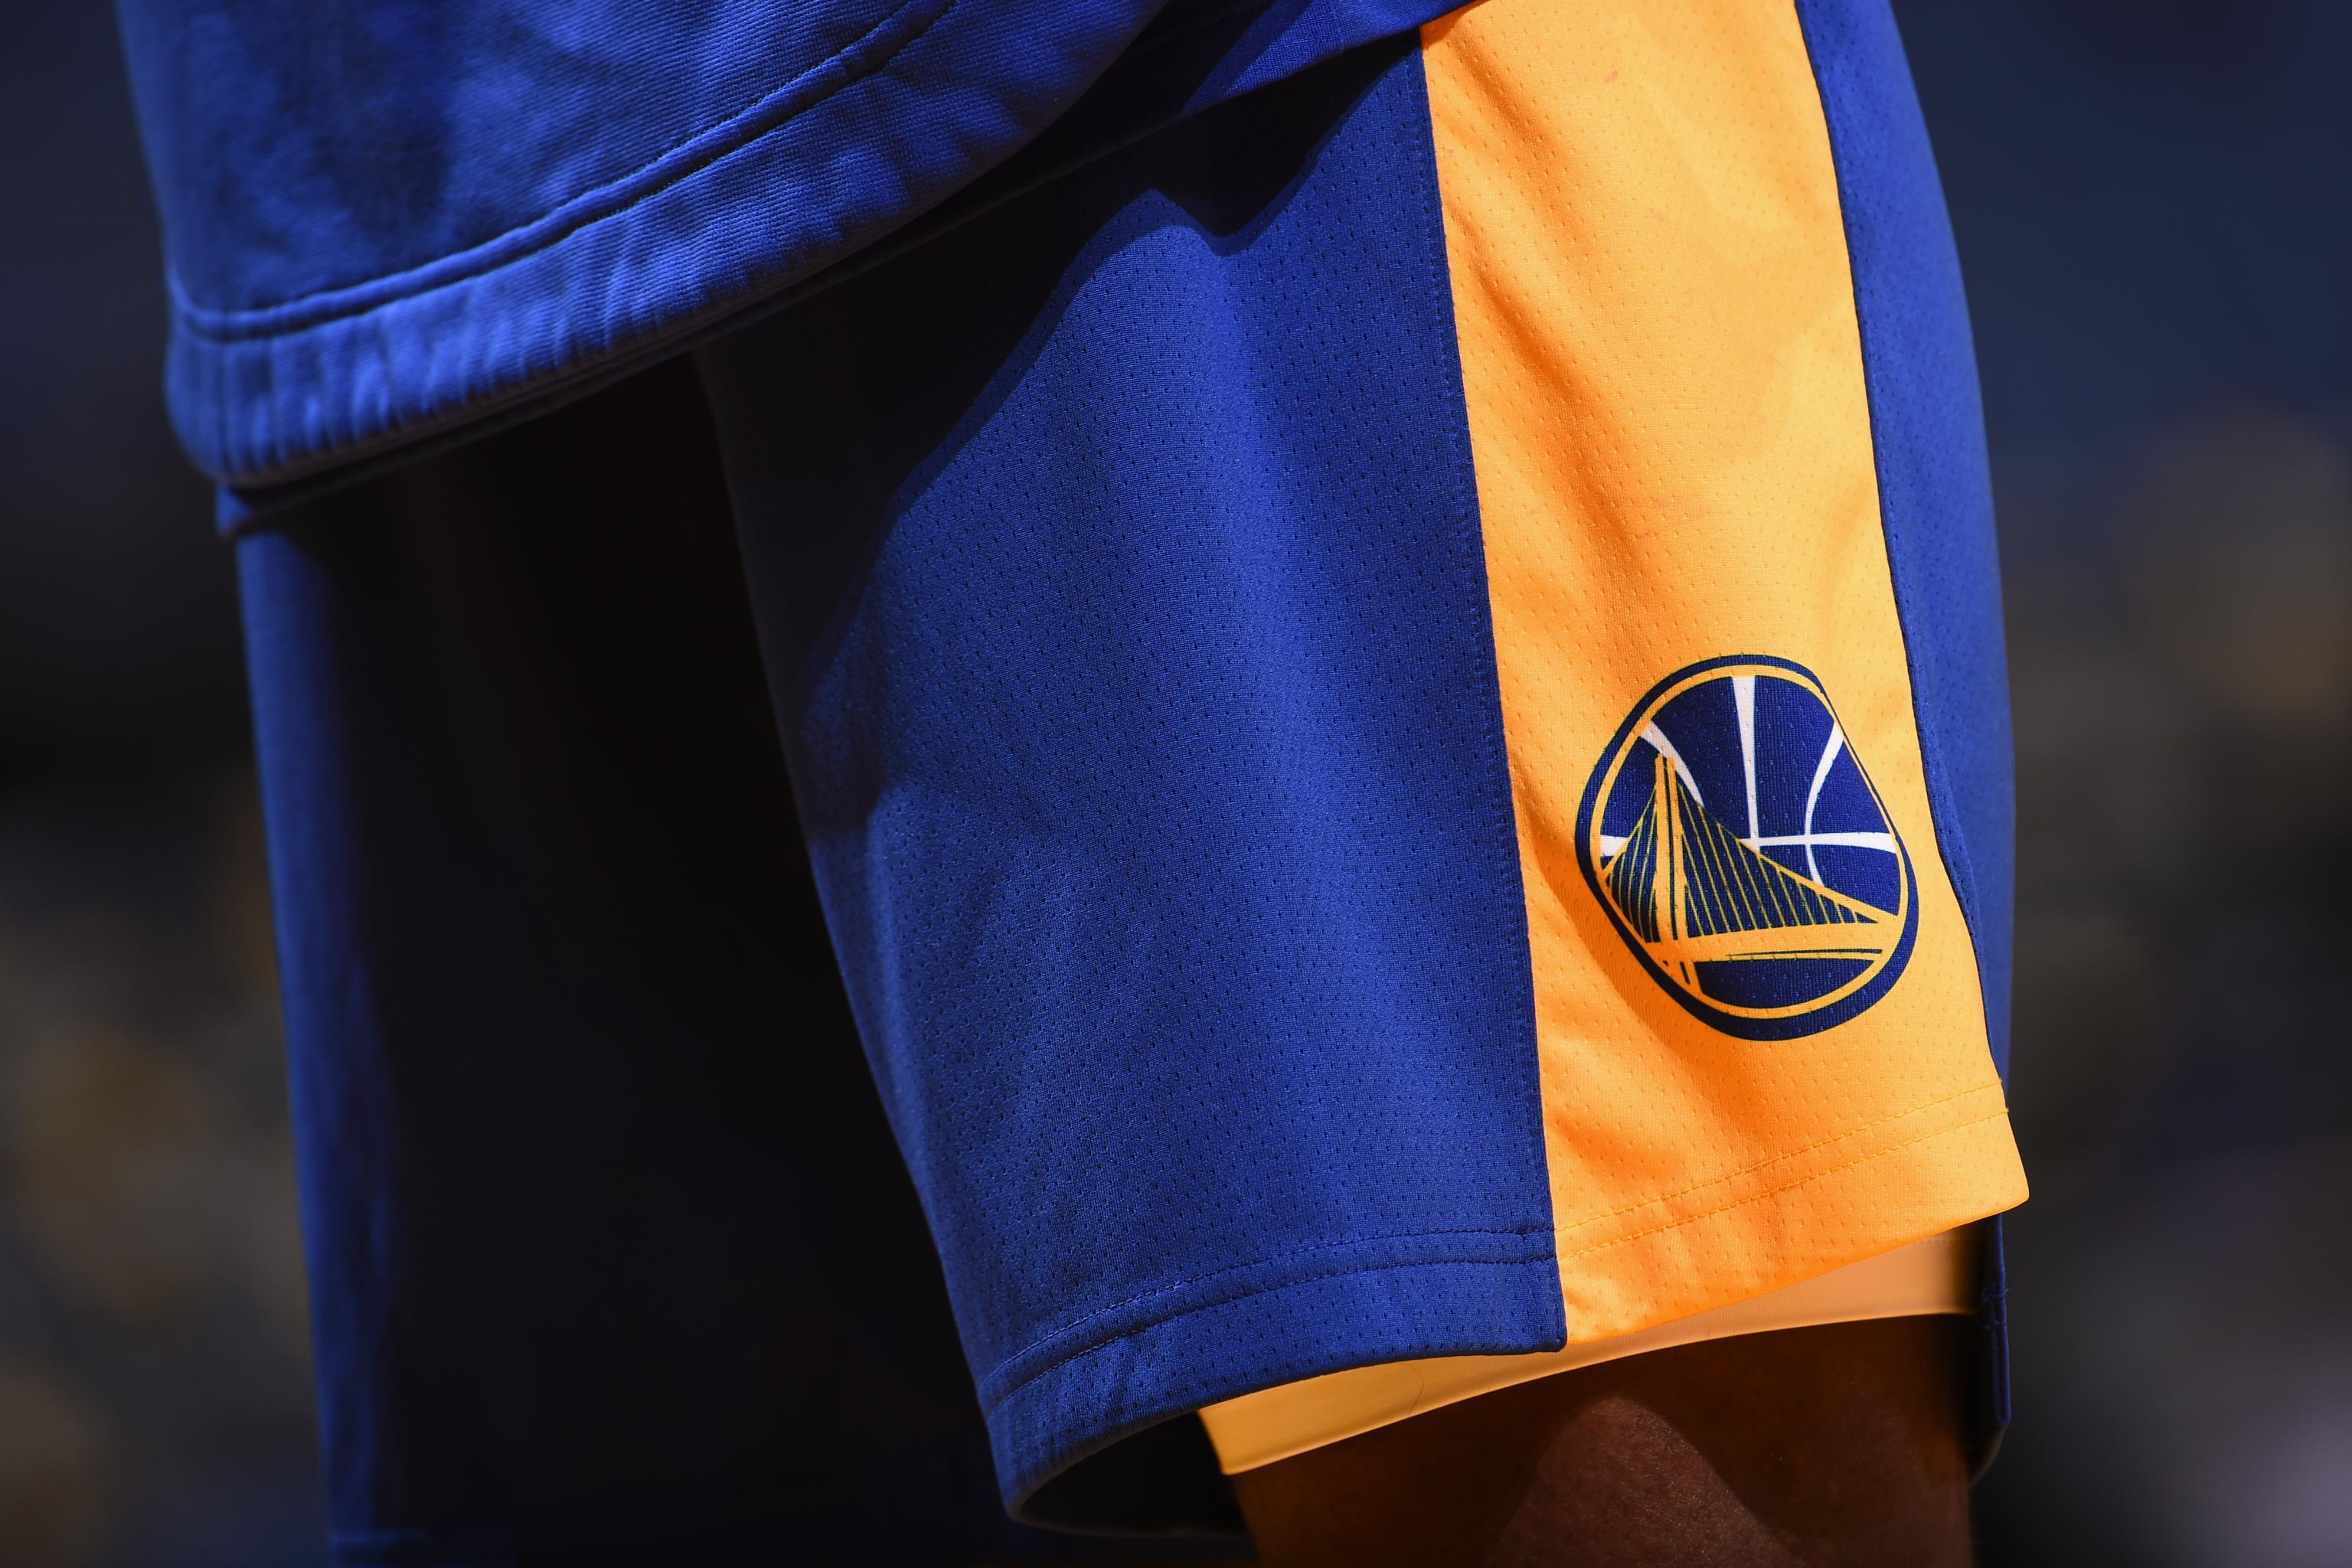 timeless design c1869 b0e67 Look: Warriors' New Jerseys, Logo for 2019-20 Surface in ...